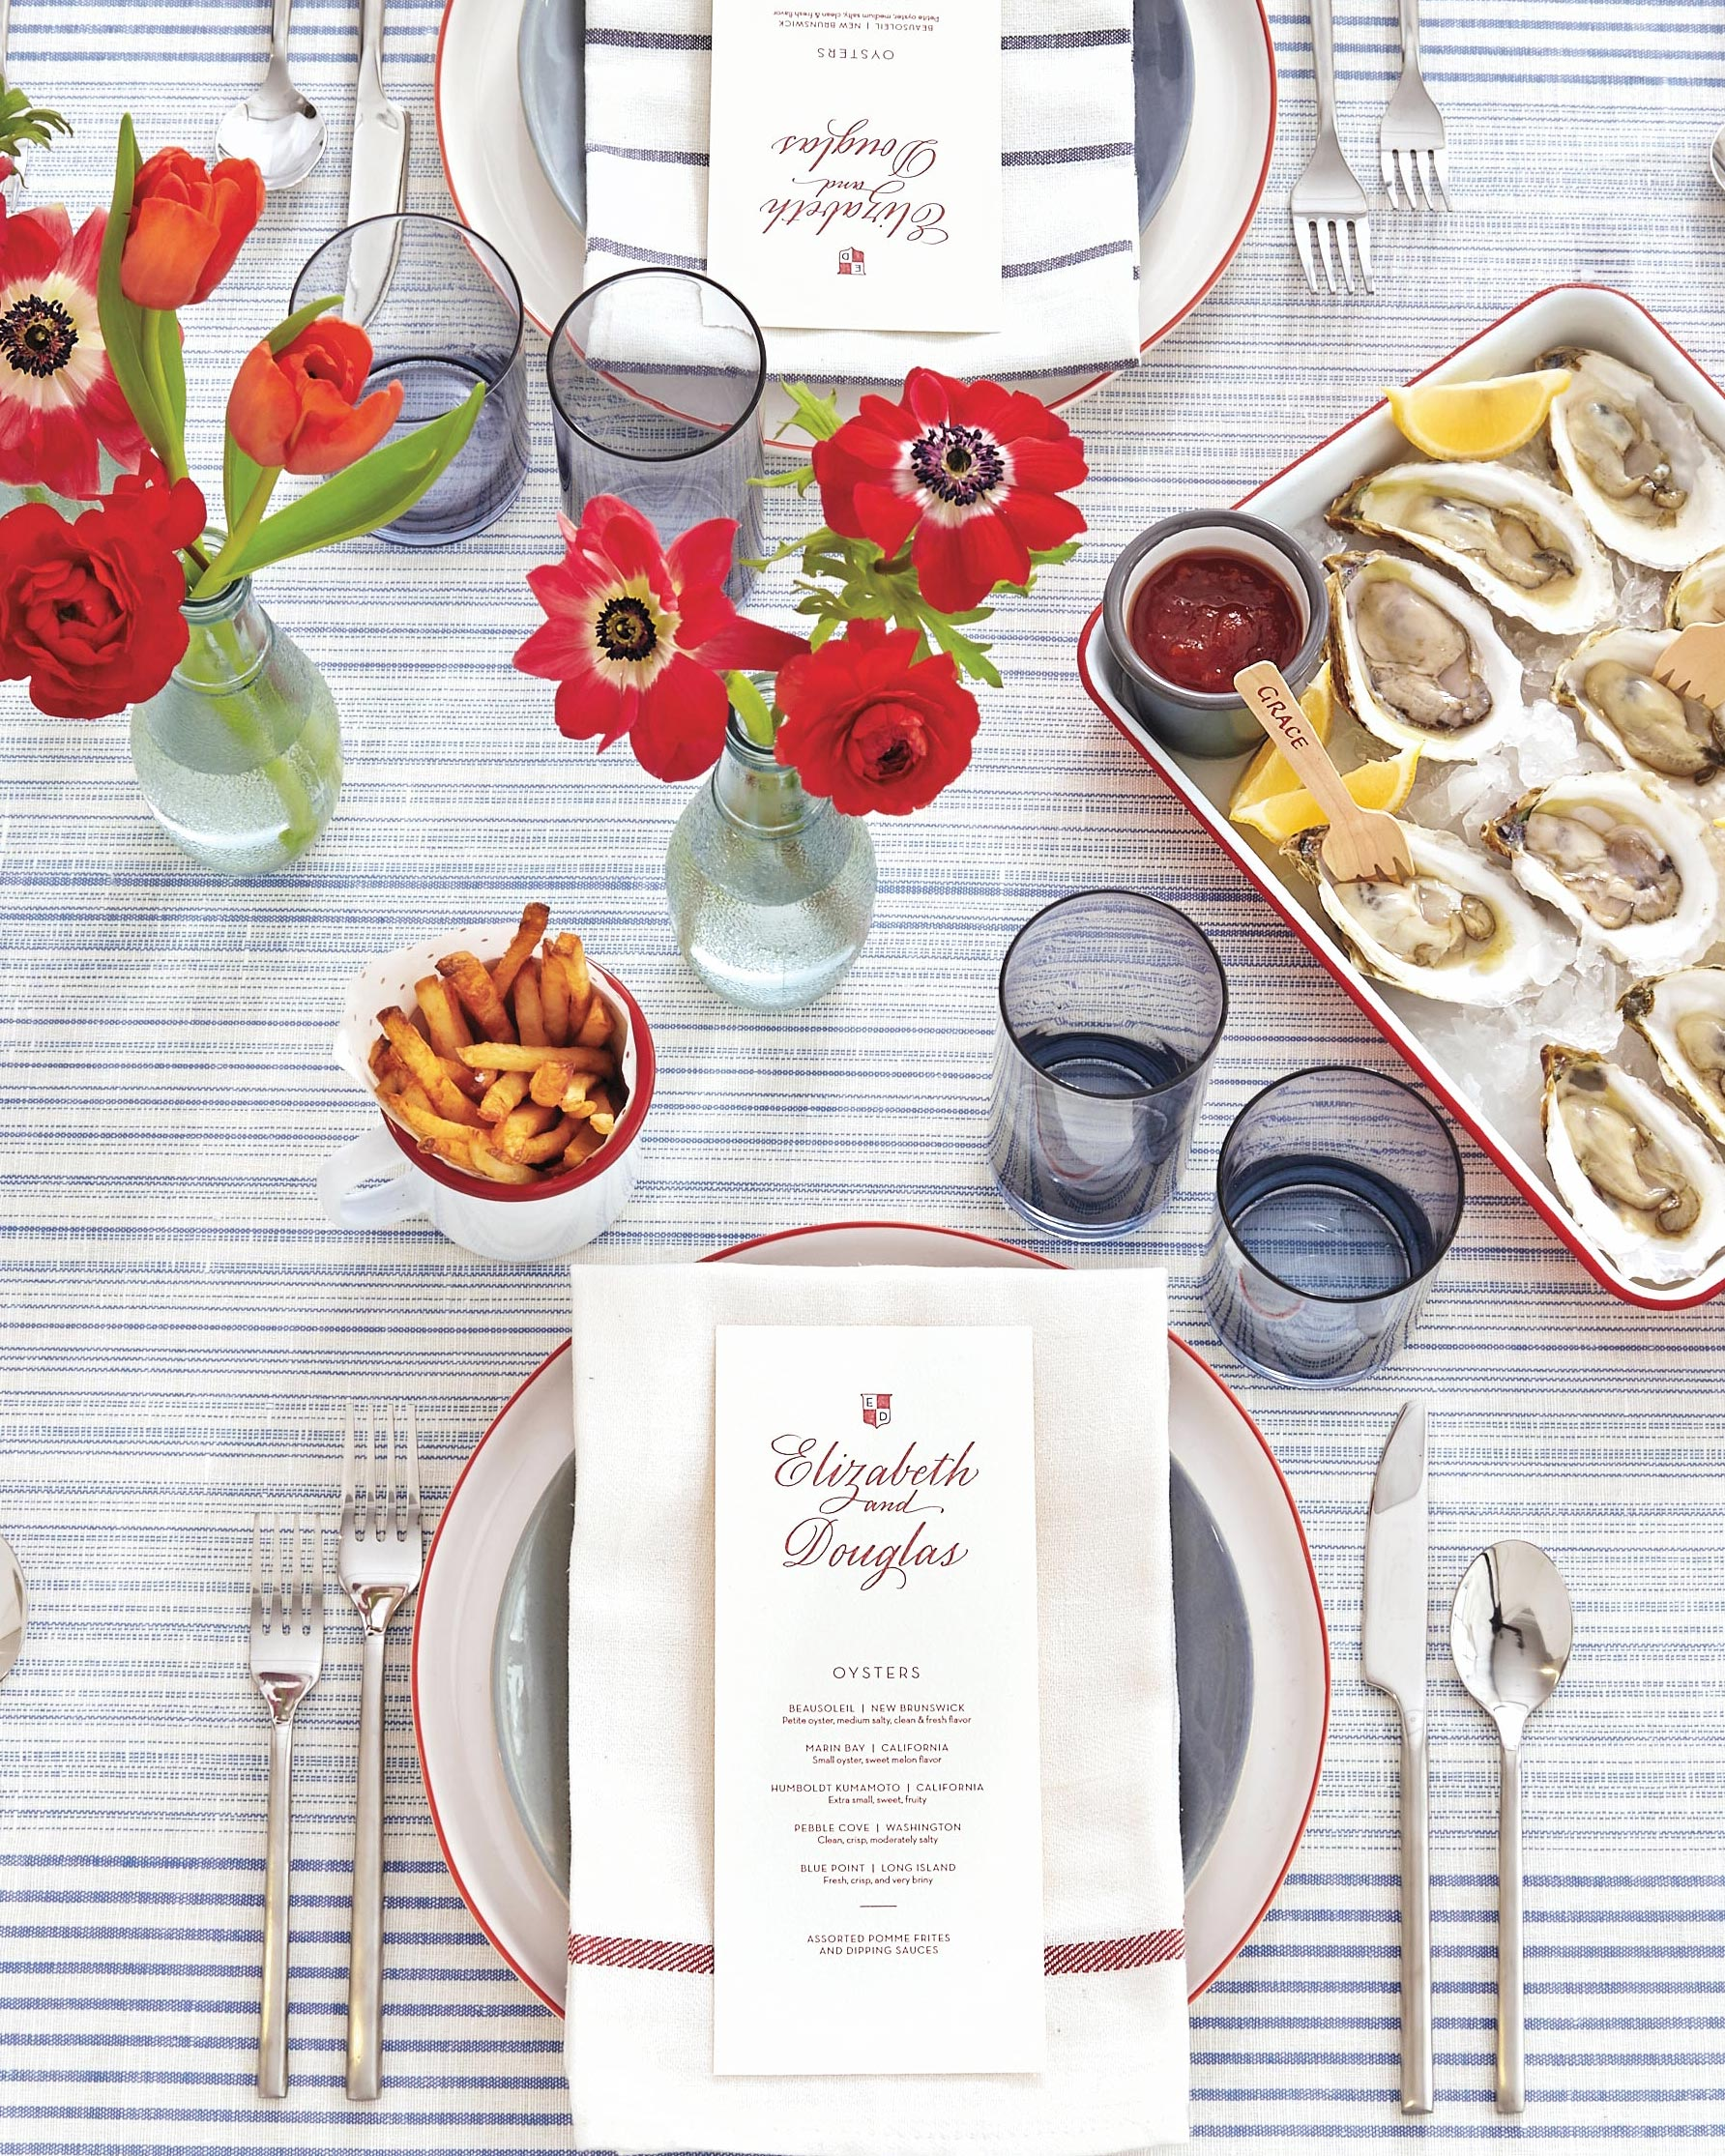 blue-red-wedding-colors-table-setting-oysters-698-d112667_r.jpg